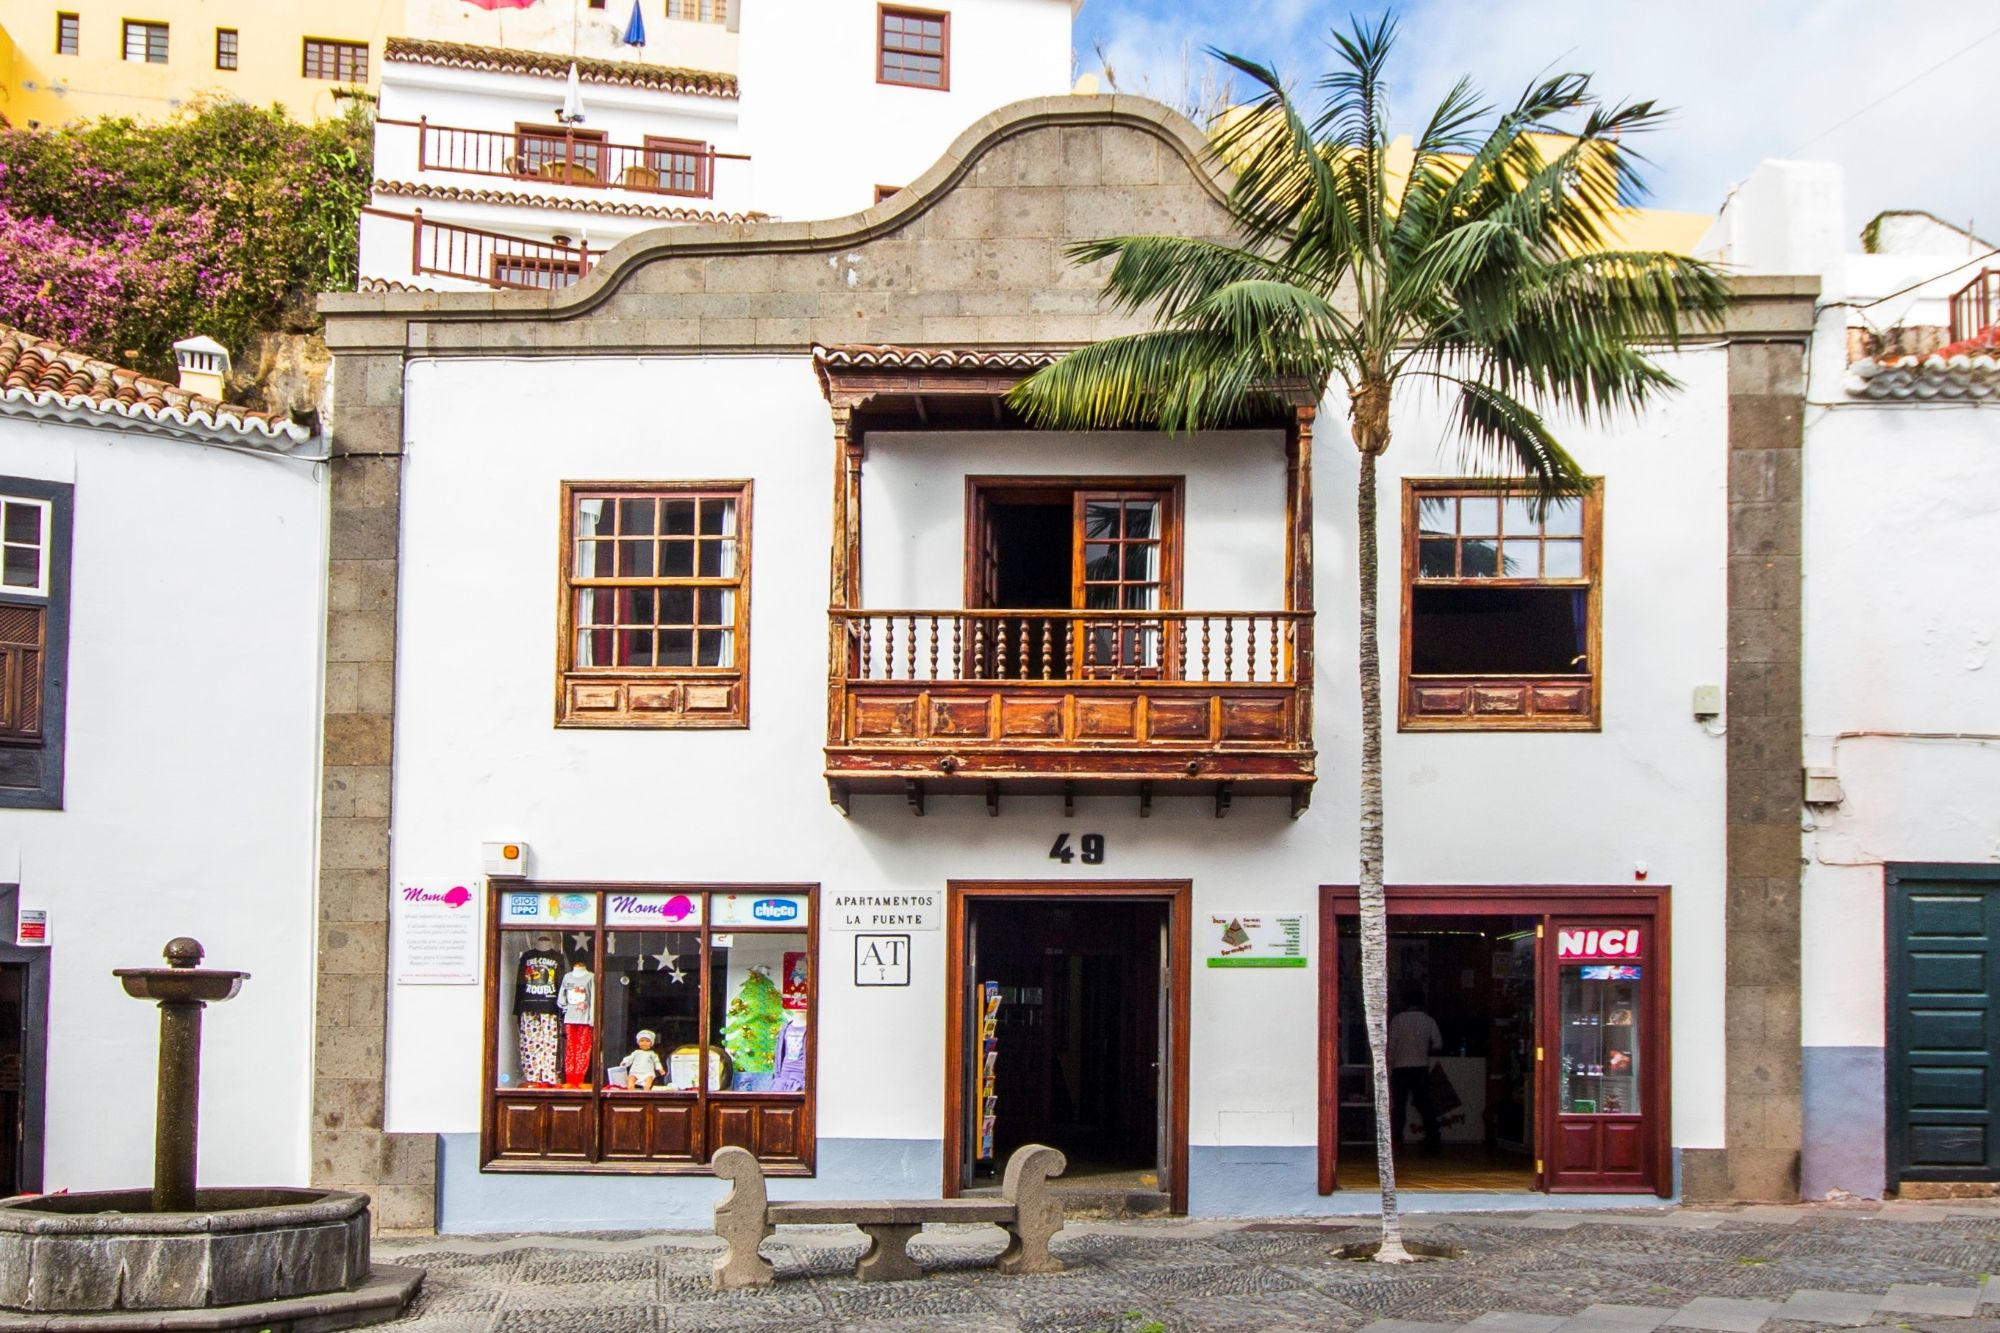 Self-catering apartments la fuente Santa Cruz de la Palma